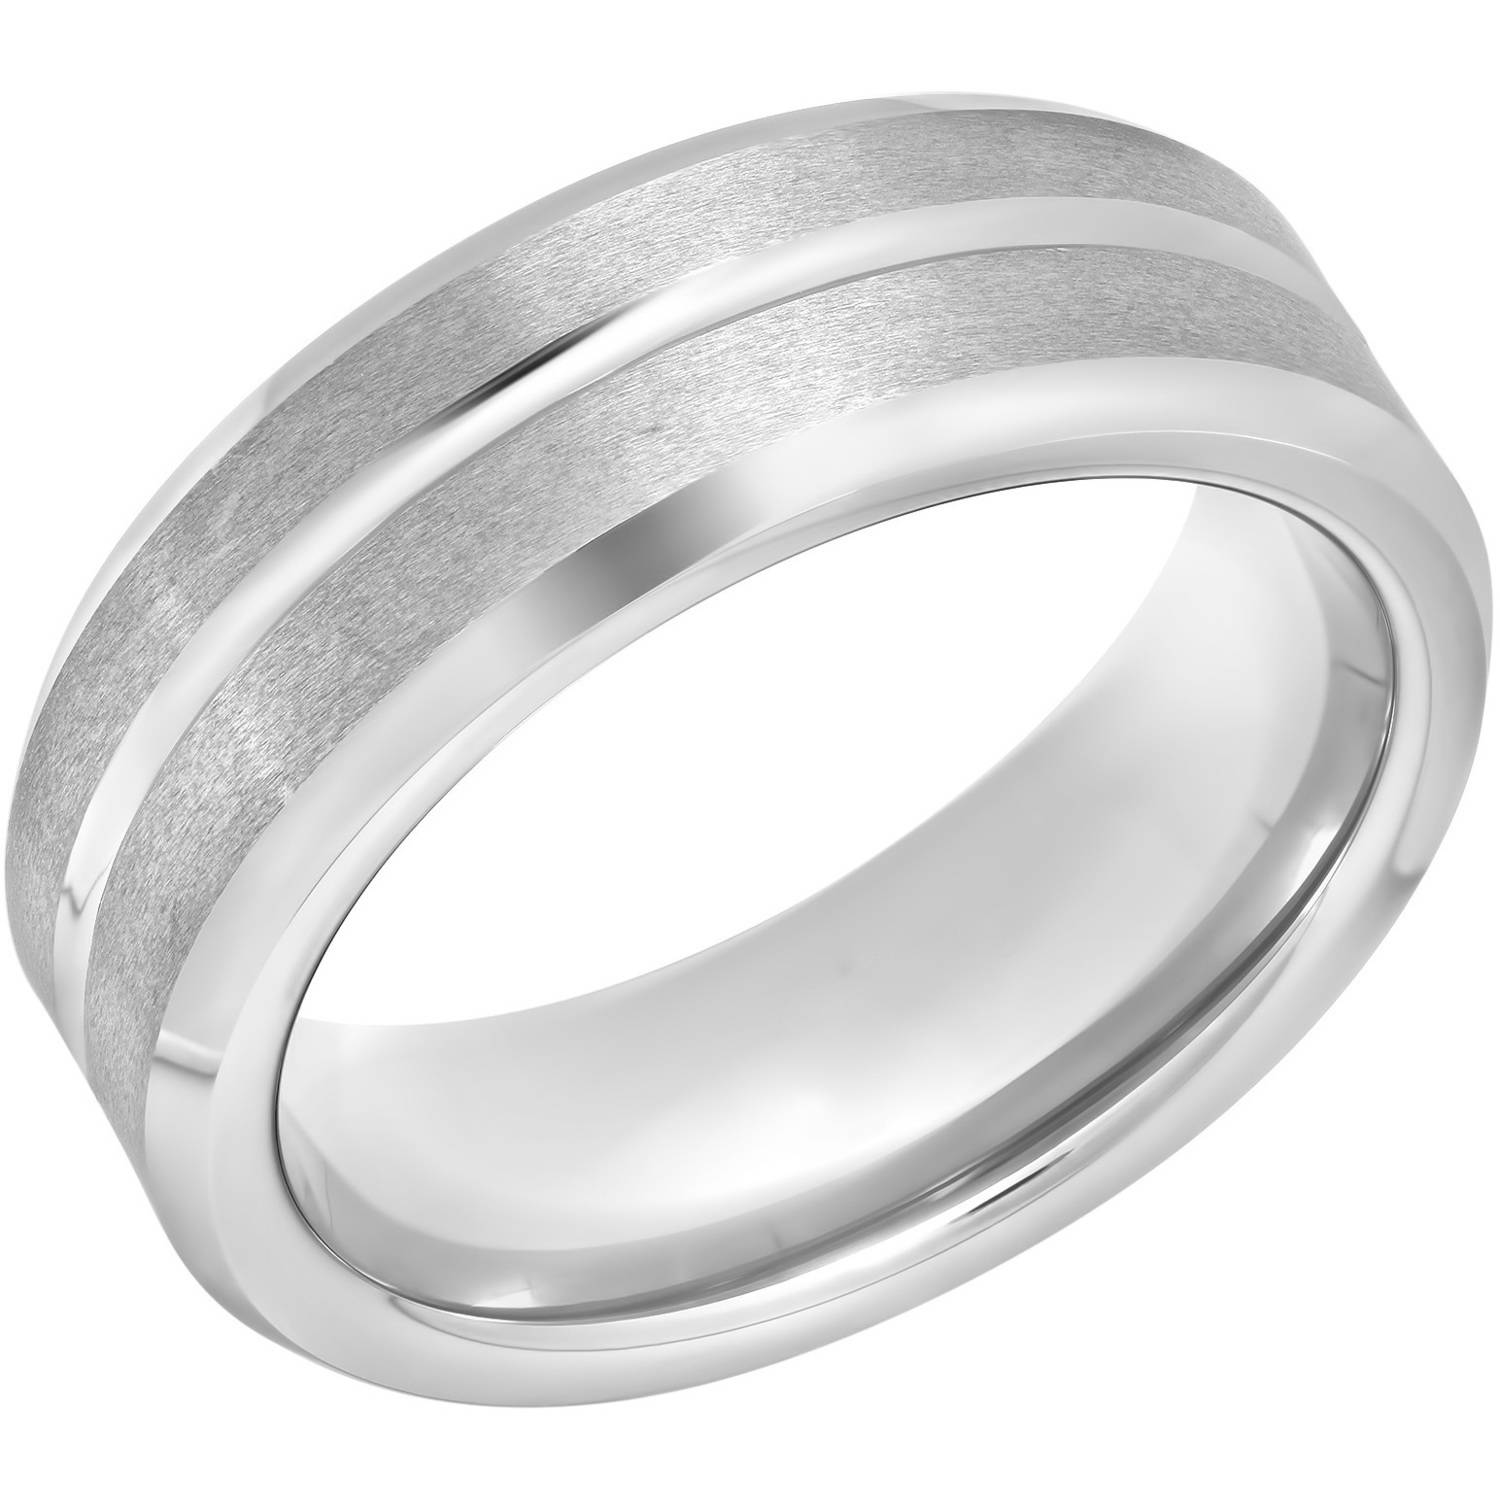 Mens Tungsten 8MM Satin and High Polish Grooved Wedding Band